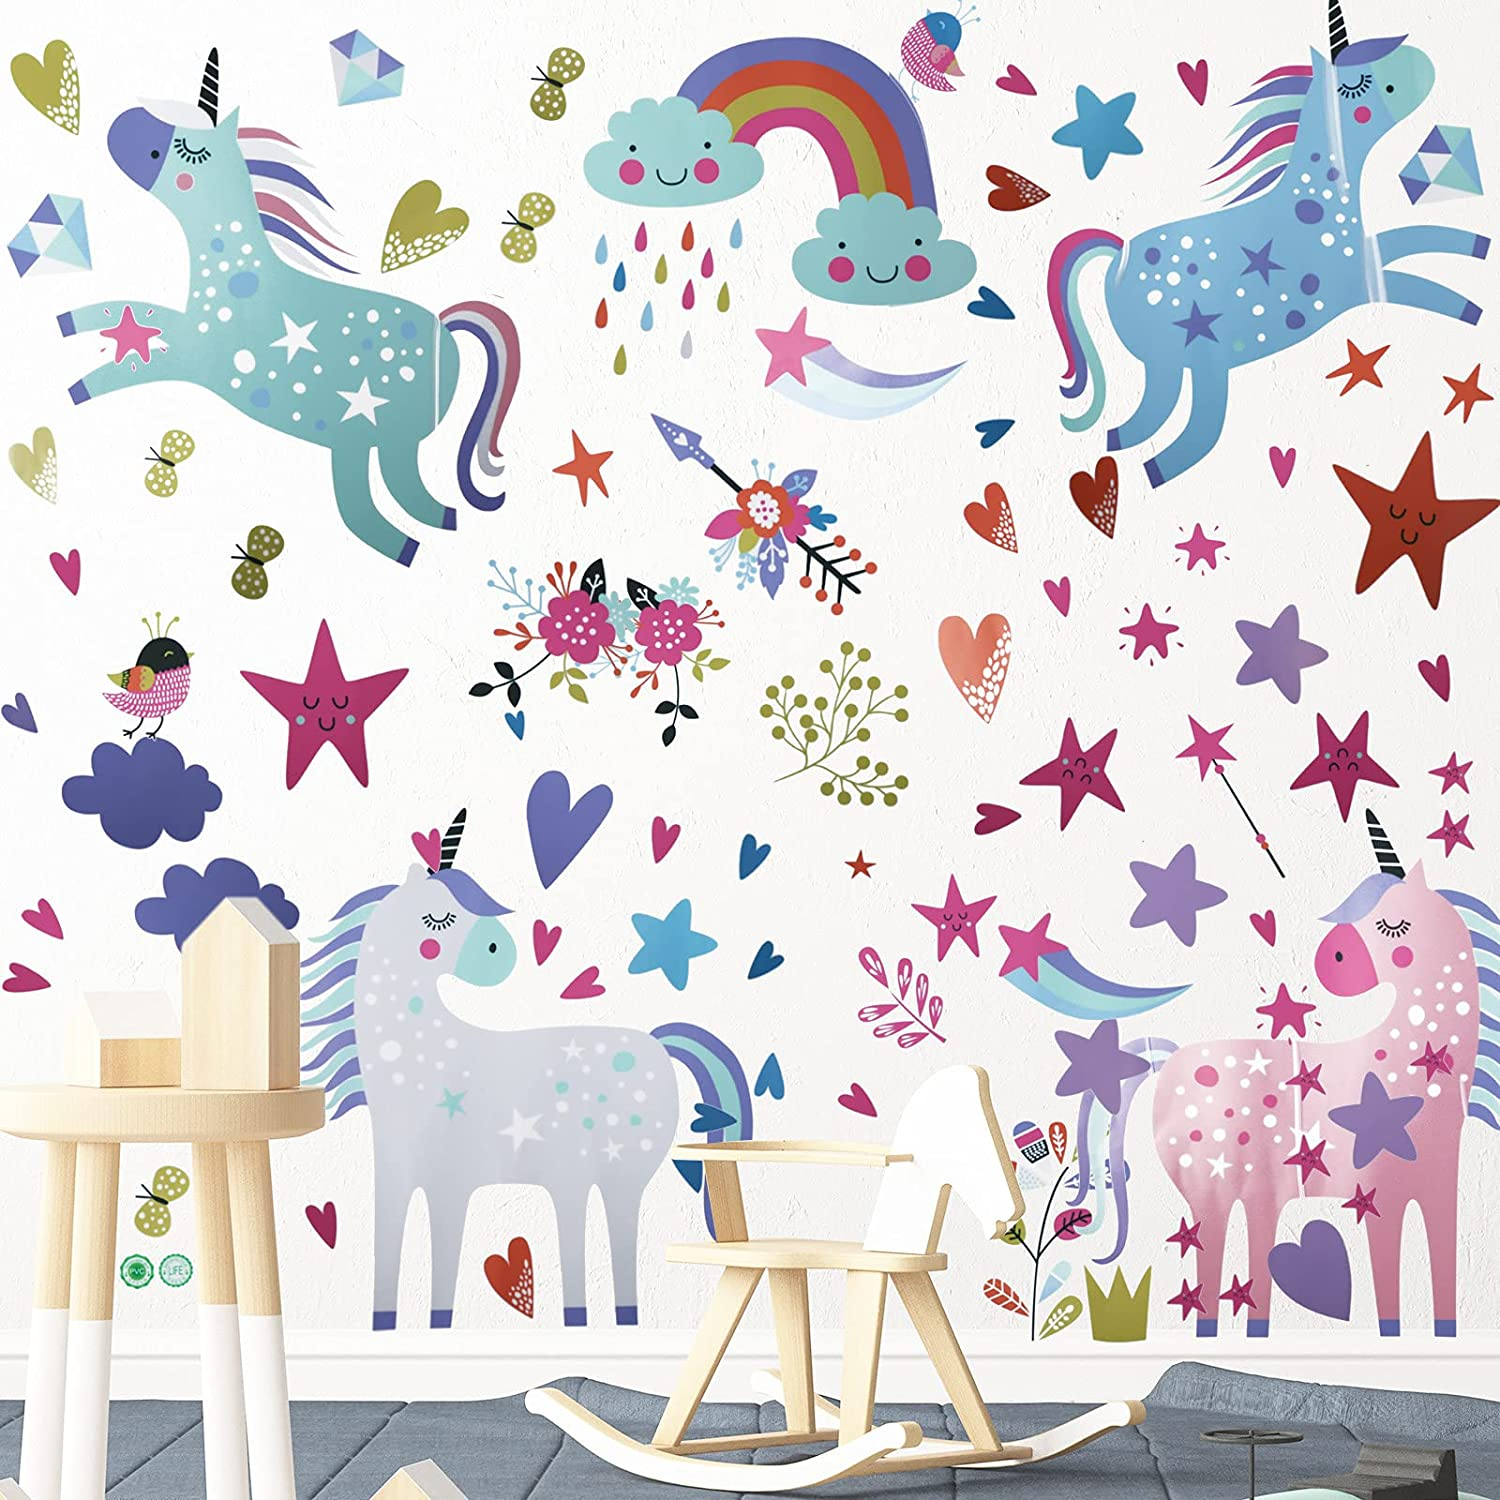 2 Sheets Unicorn Wall Decals Removable Unicorn Rainbow Wall Stickers for Girls Kids Bedroom Nursery Birthday Party Decor